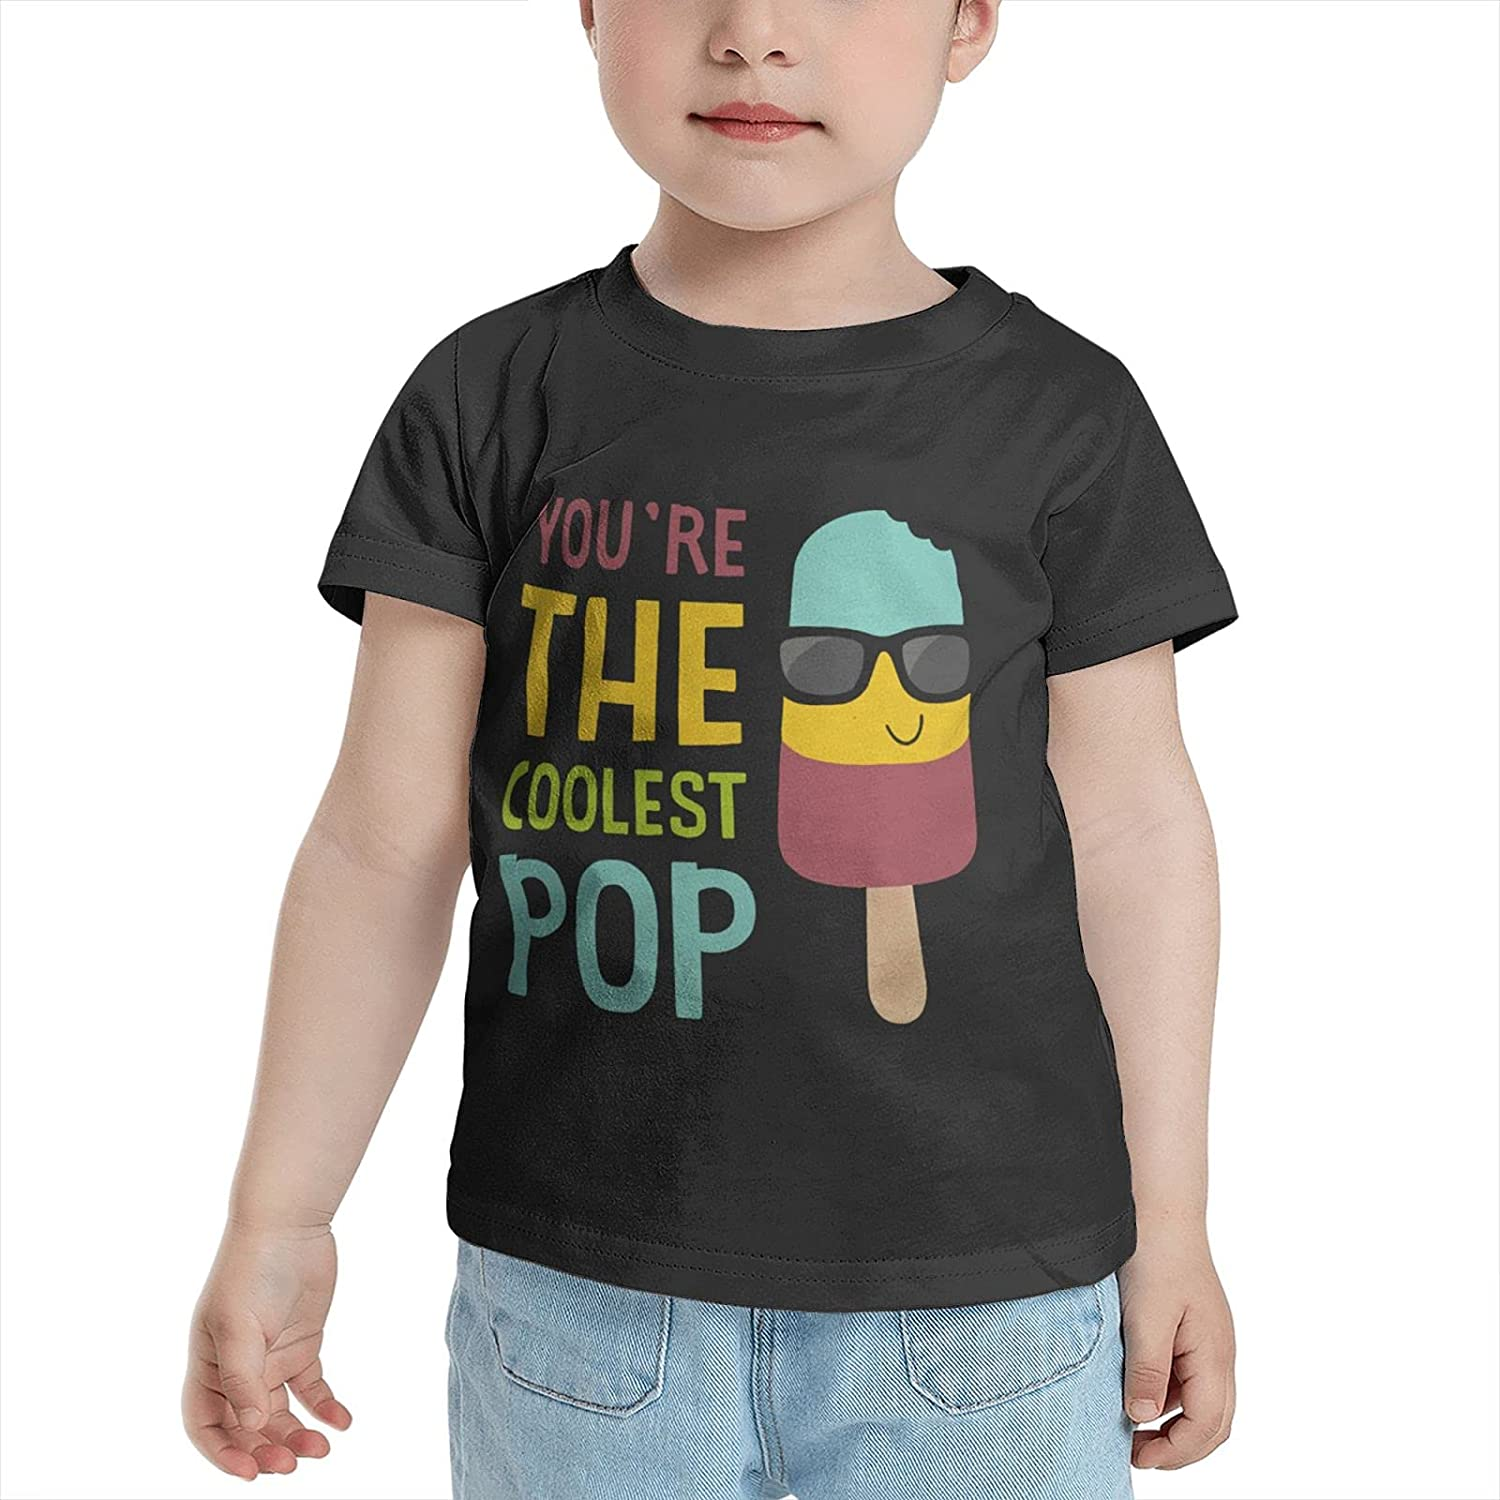 You're The Coolest Pop Children's T-Shirt Pure Cotton Short-Sleeved T-Shirt for Boys and Girls, 100% Allergy-Free Cotton Round Neck Unisex 2t Black